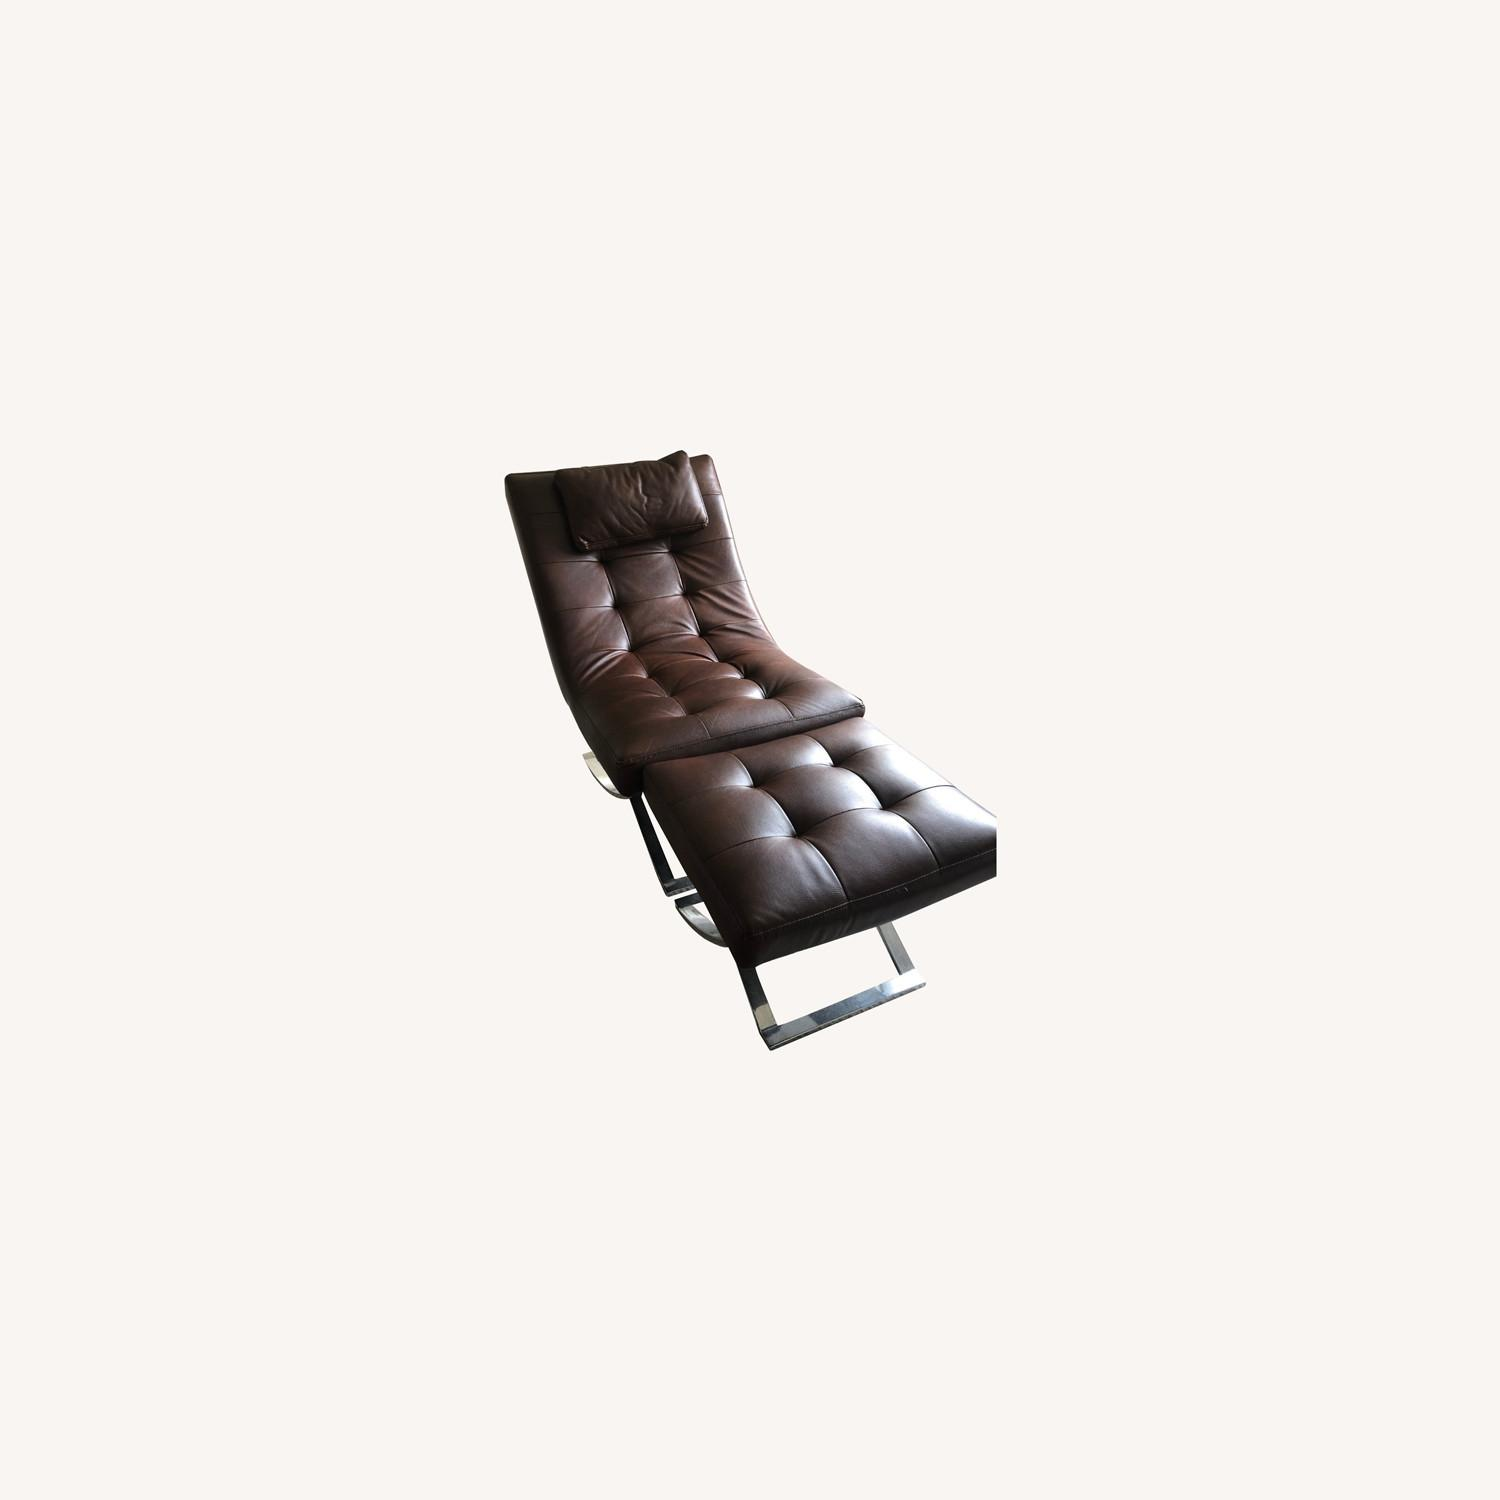 Raymour & Flanigan Leather Chaise and Ottoman - image-0